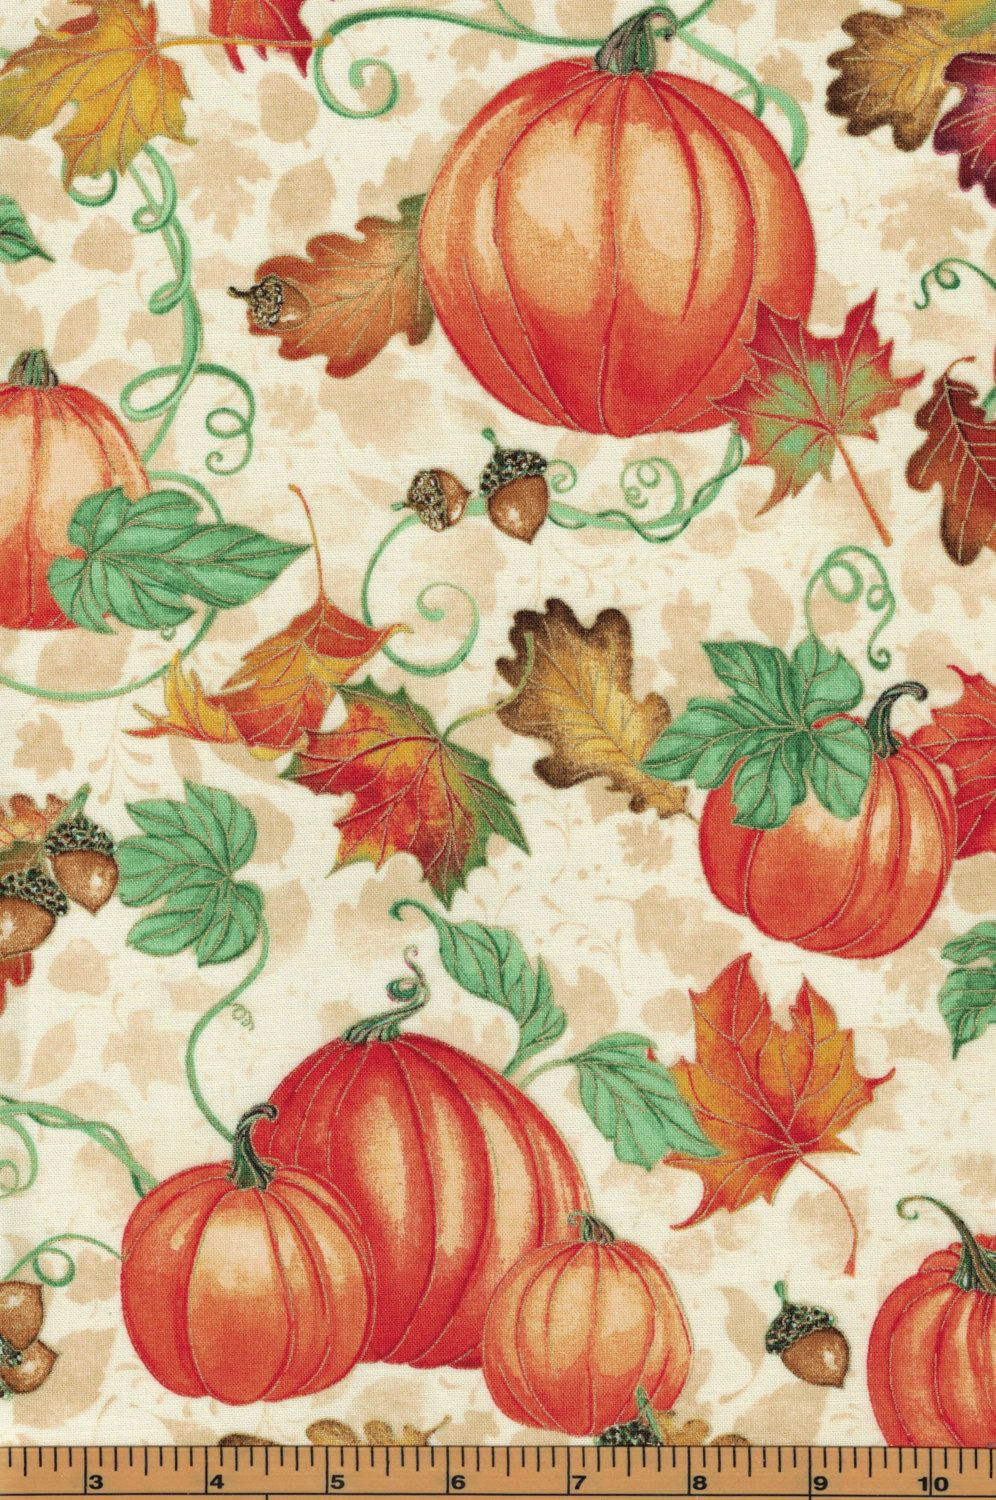 Pumpkins - Harvest Bounty Collection by Quilting Treasures- 100 ... : quality quilting fabric - Adamdwight.com